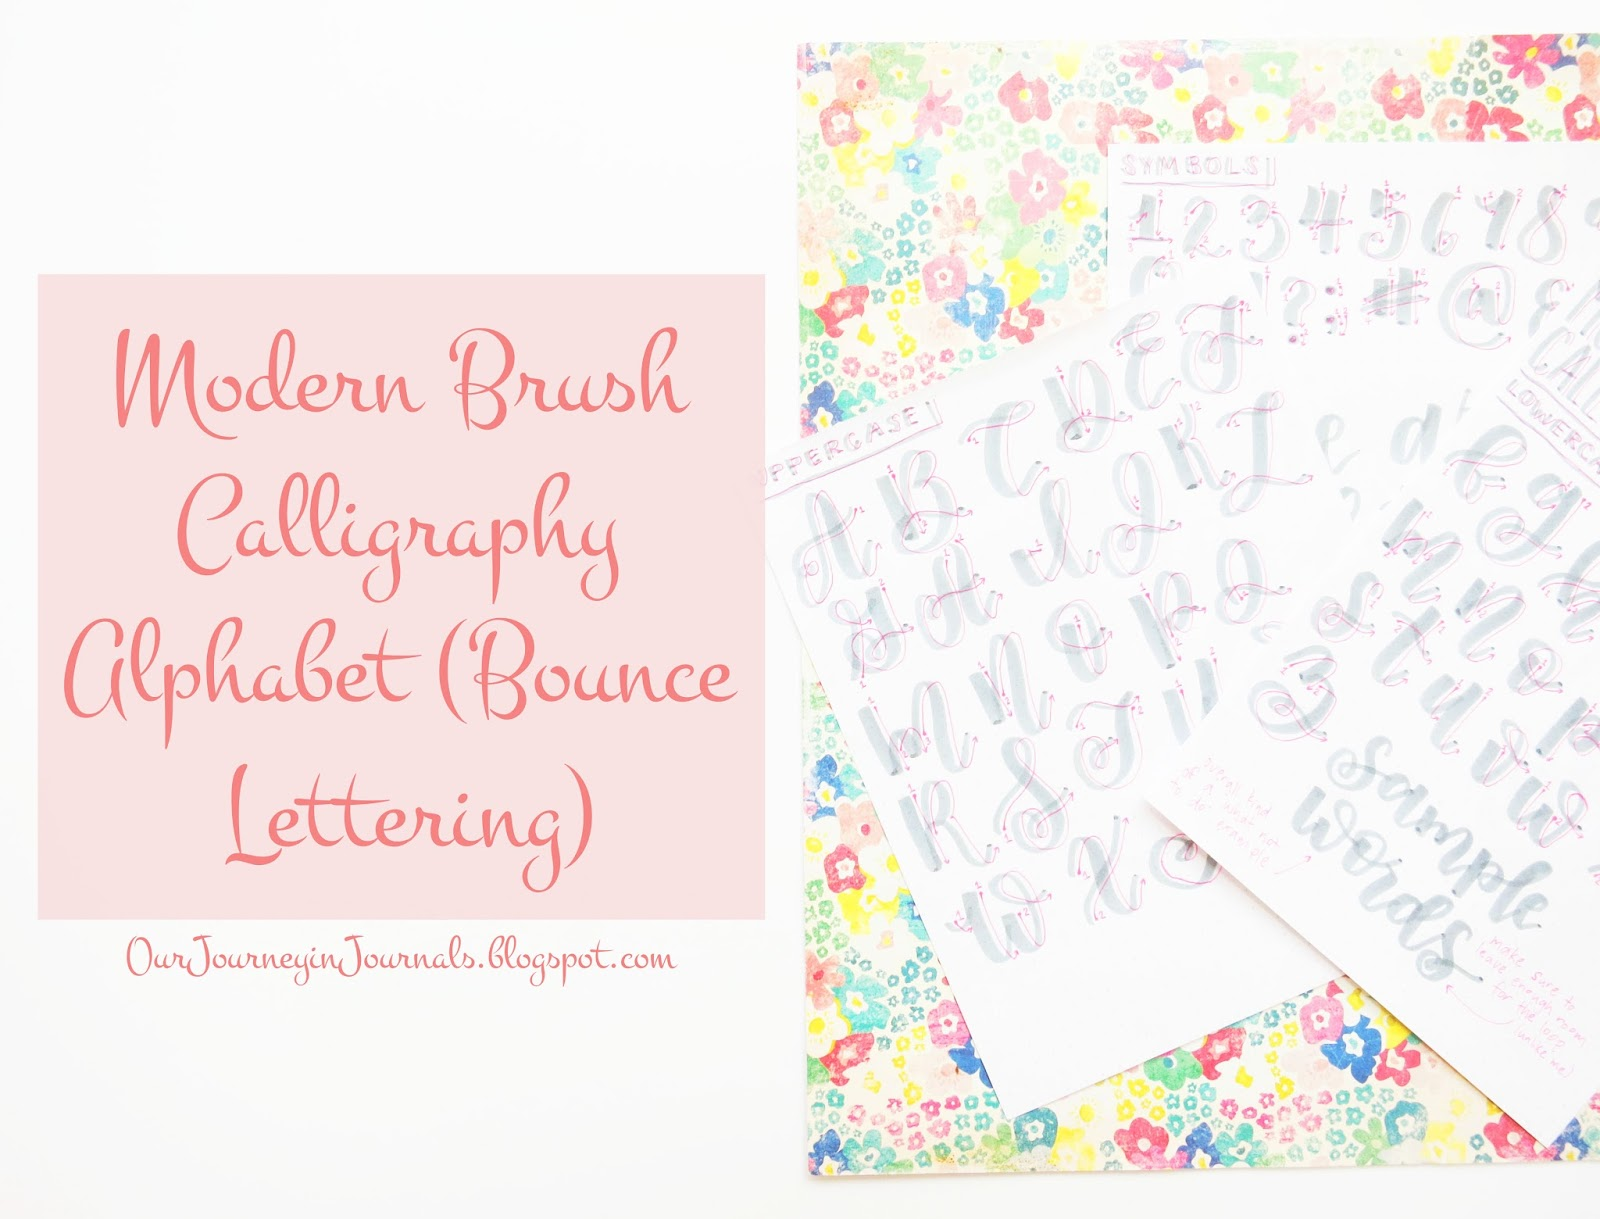 Our journey in journals modern brush calligraphy alphabet bounce